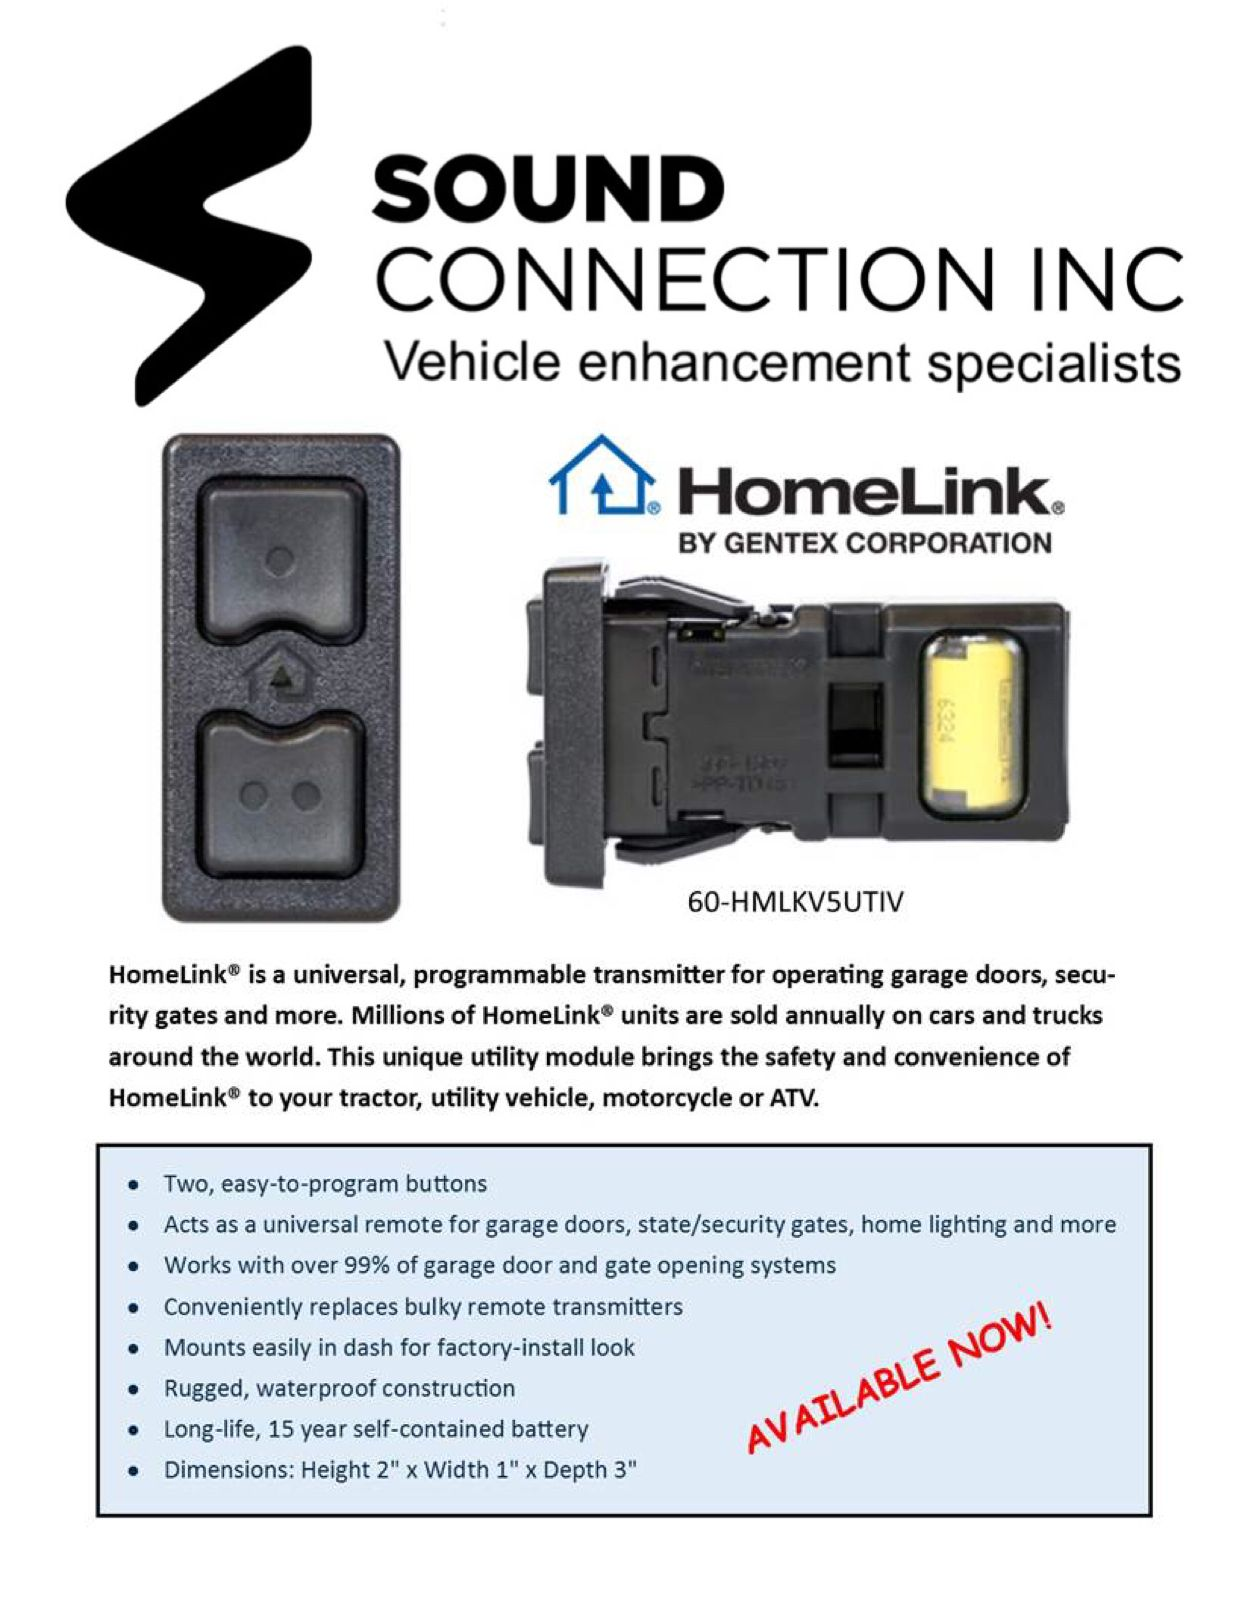 Battery Operated Wireless Homelink This Is Amazing For Utv S